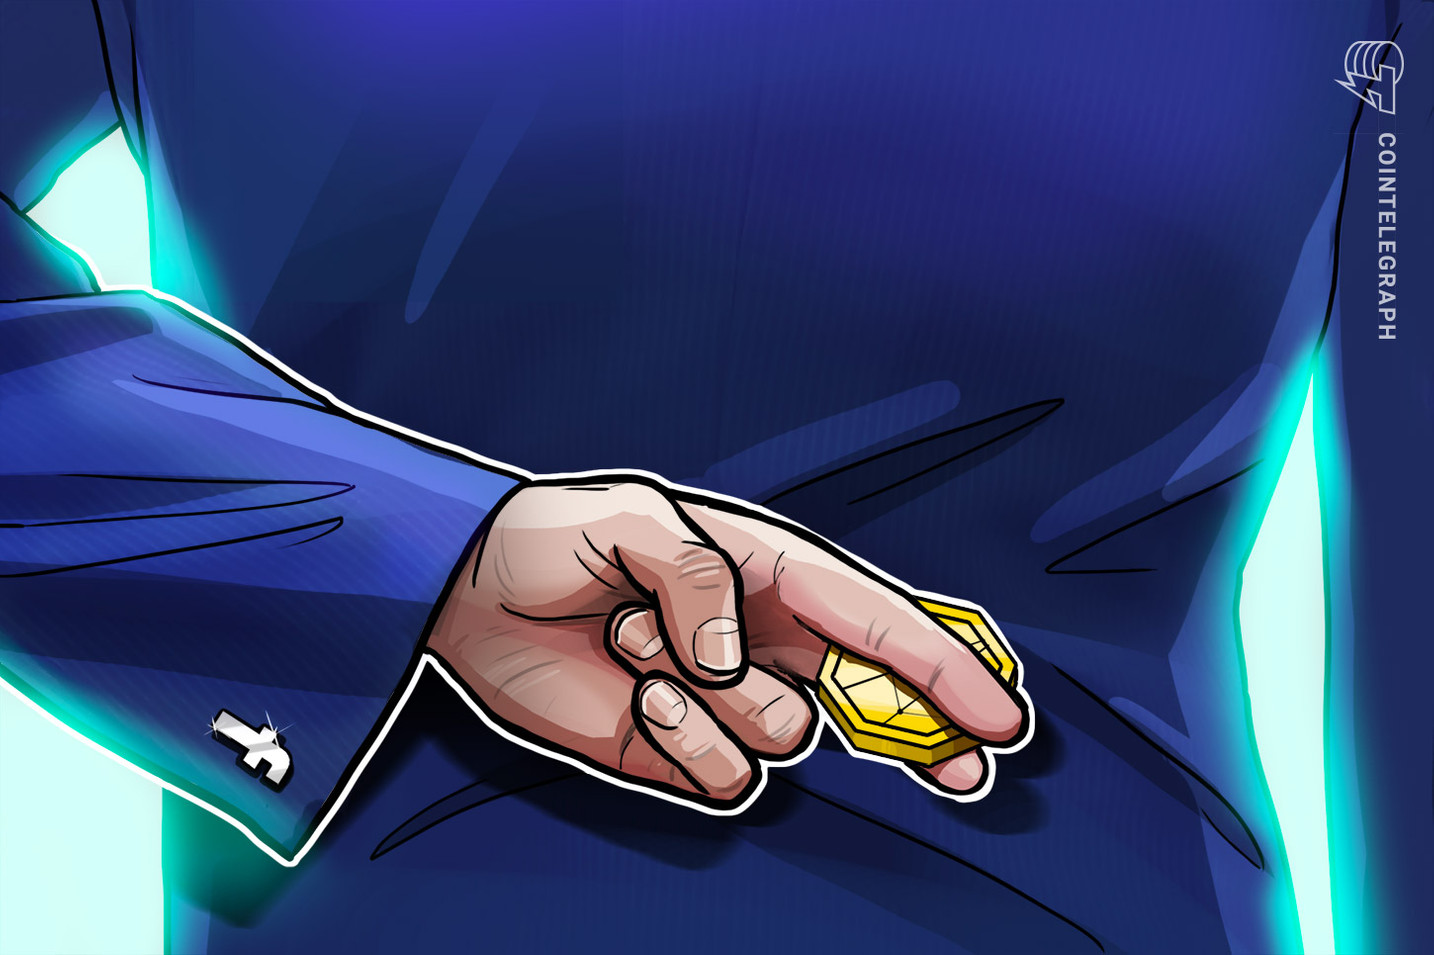 Facebook Acquires 'Libra' Trademark to Work on Its Secretive Cryptocurrency